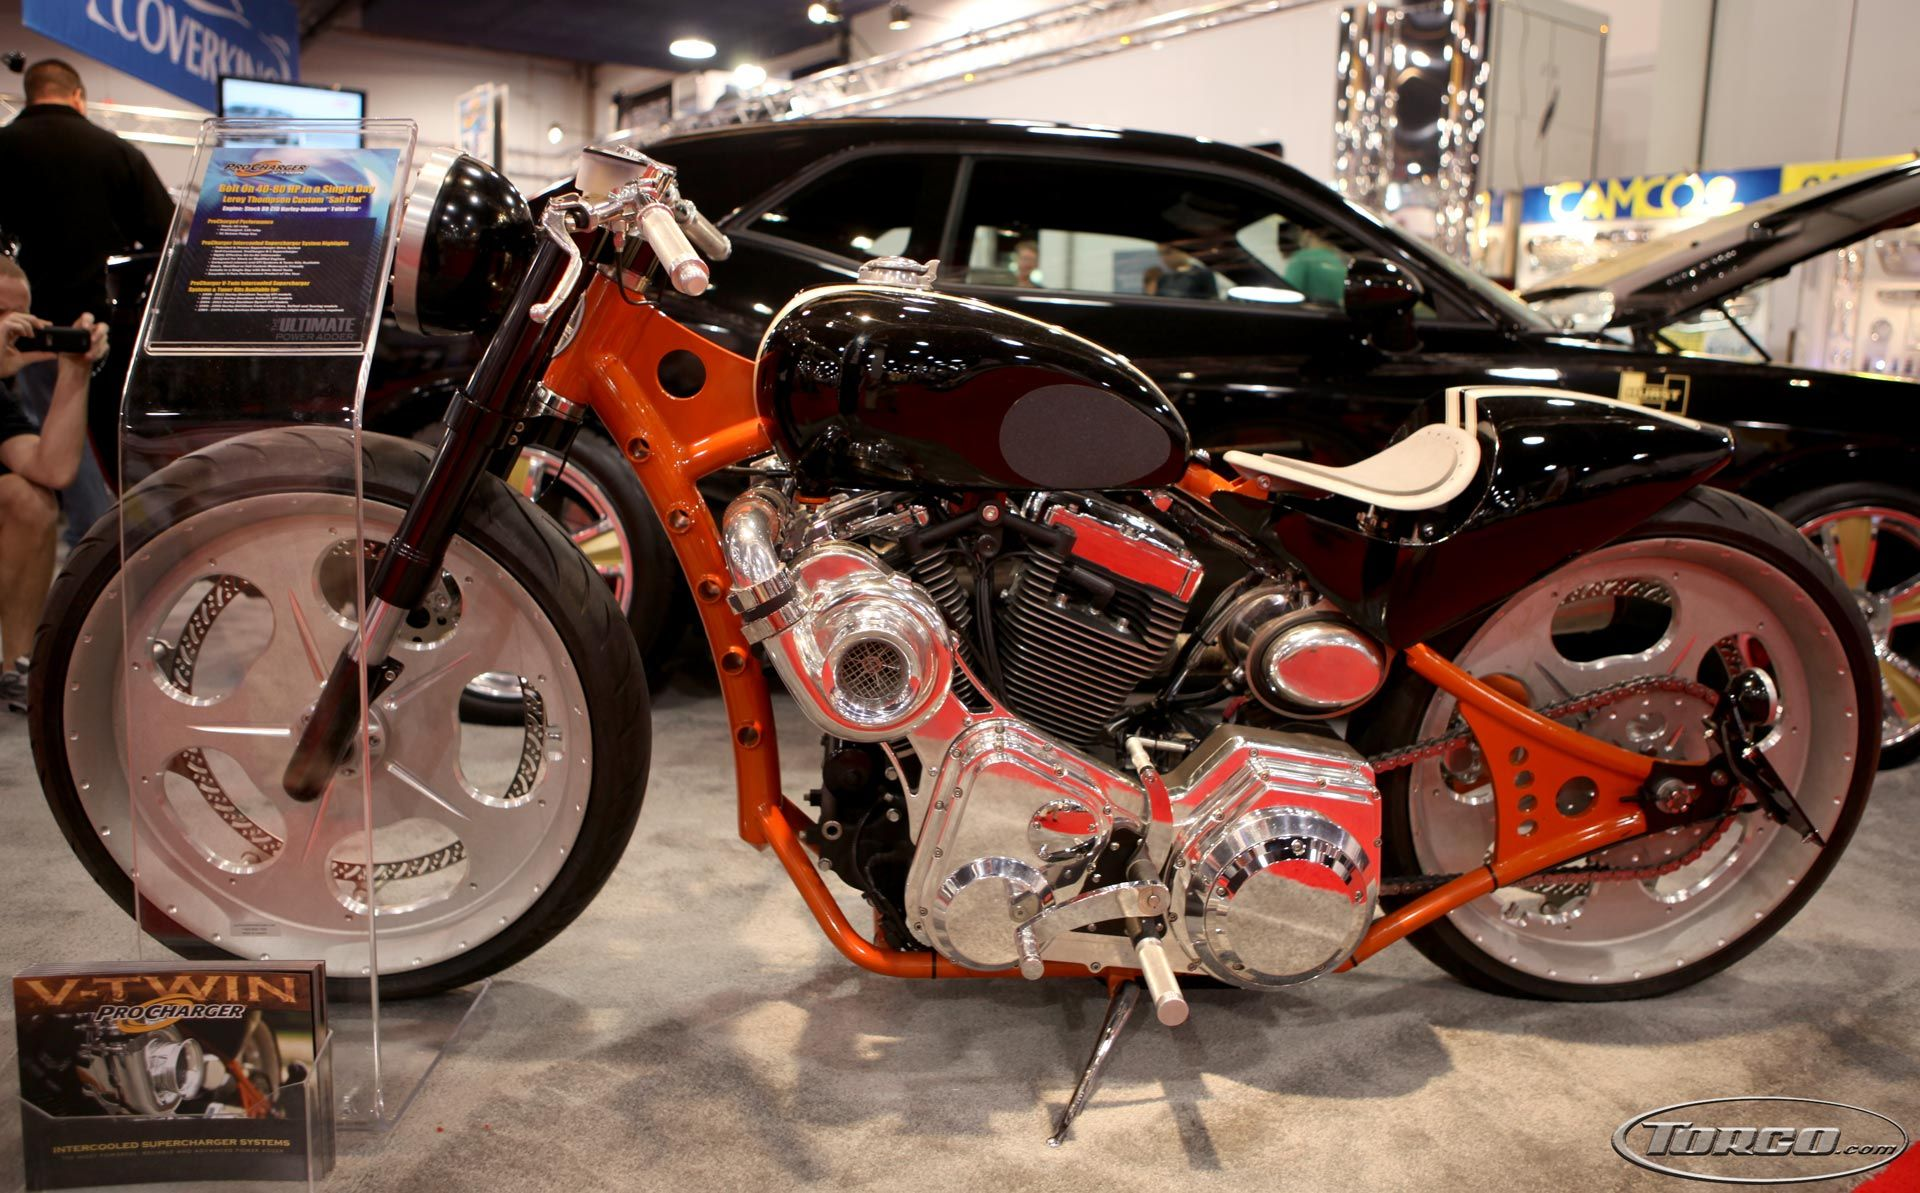 Supercharged Motorcycle